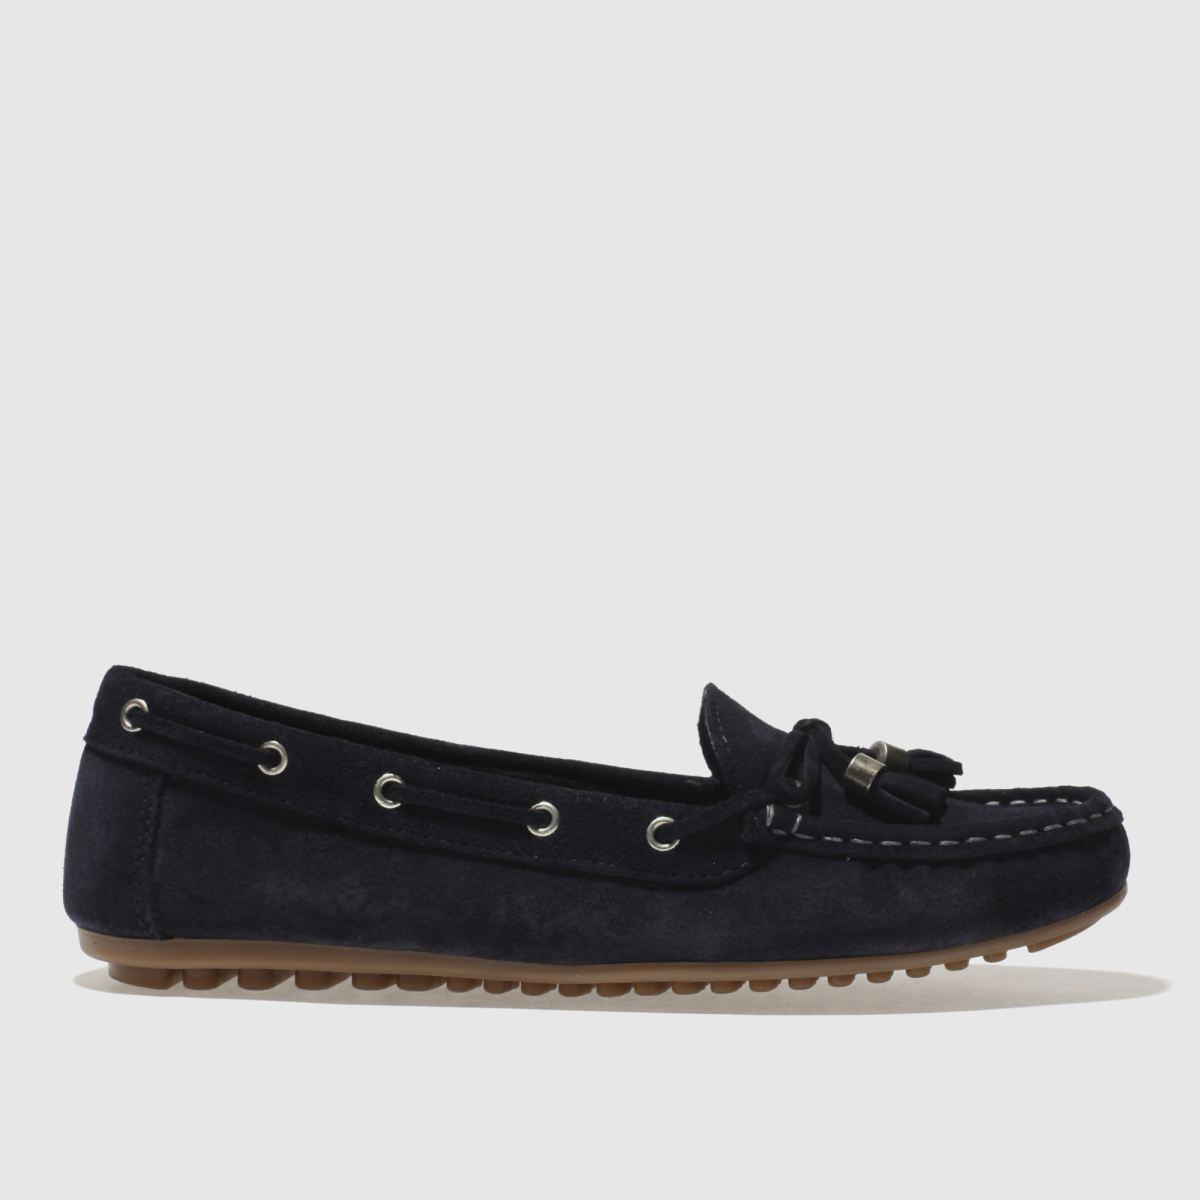 Schuh Navy Spin Around Flat Shoes